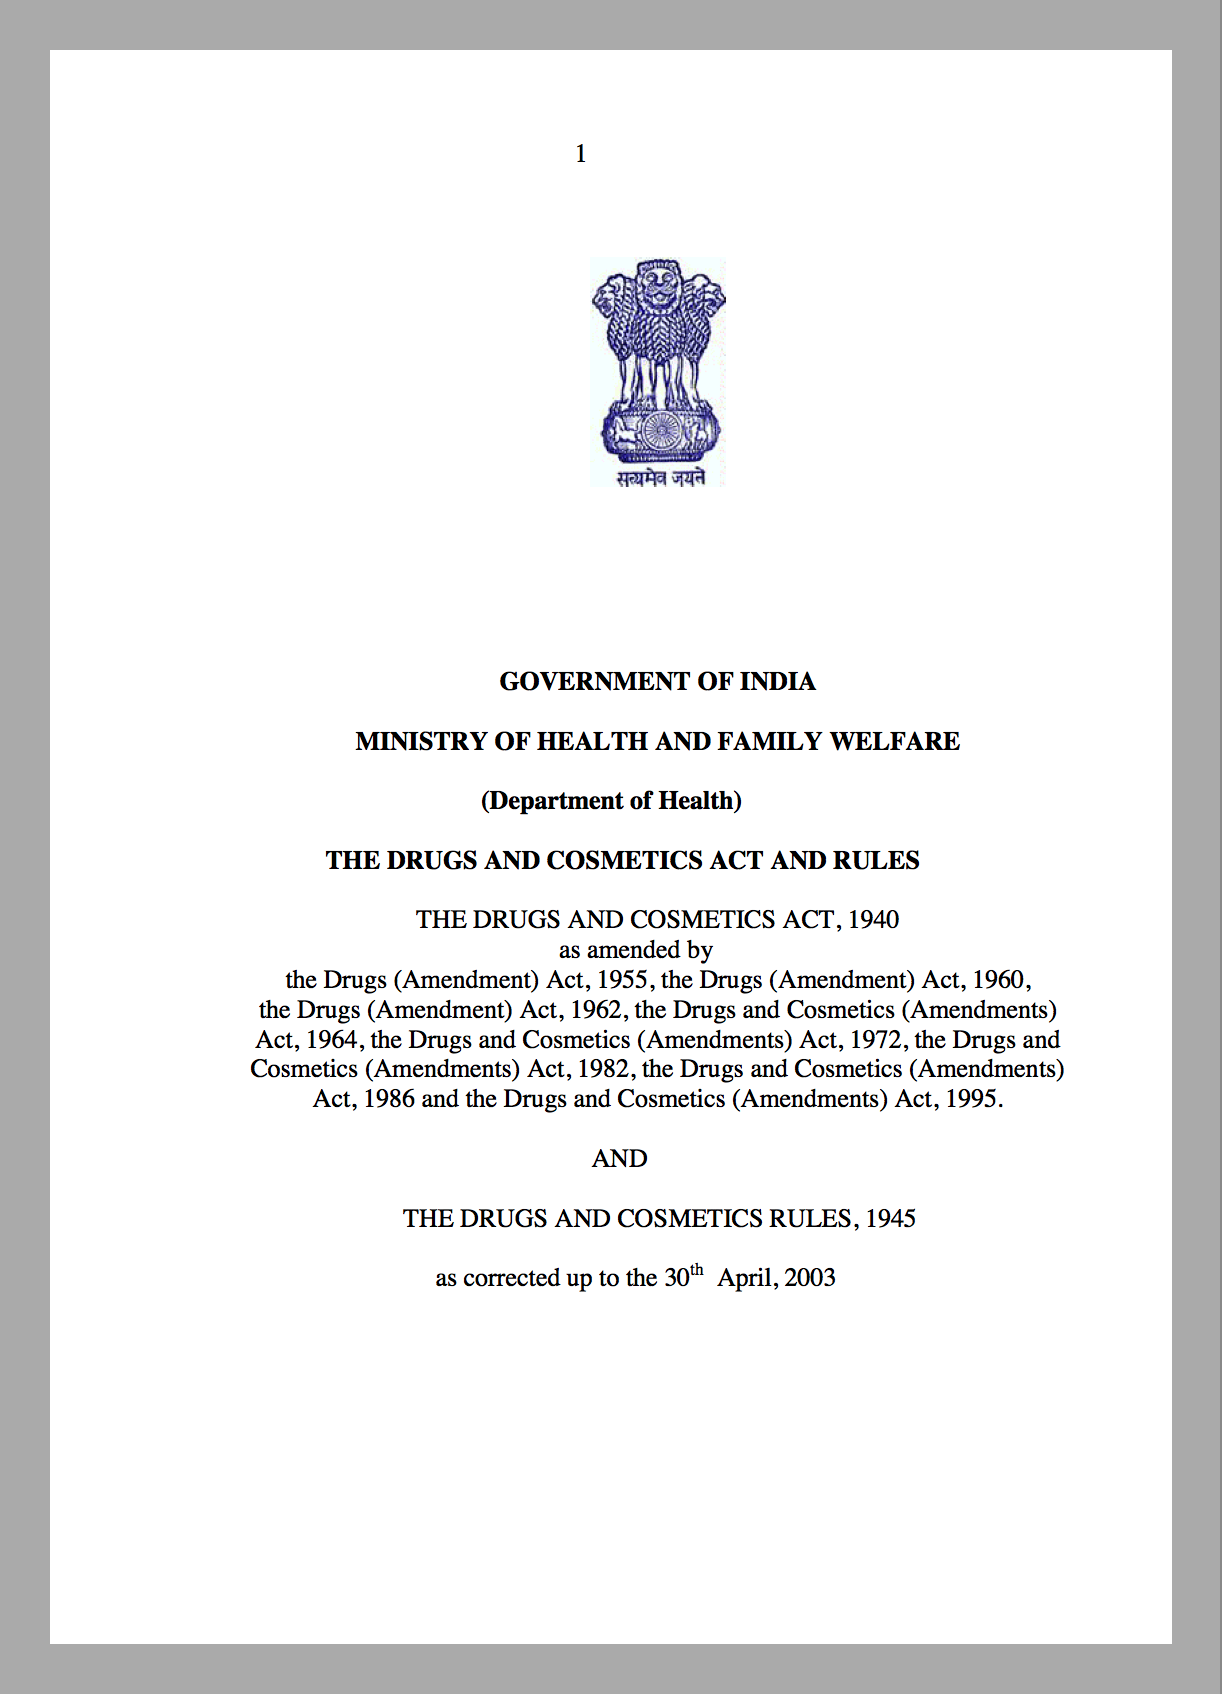 the-drugs-and-cosmetics-rules-india-1.png